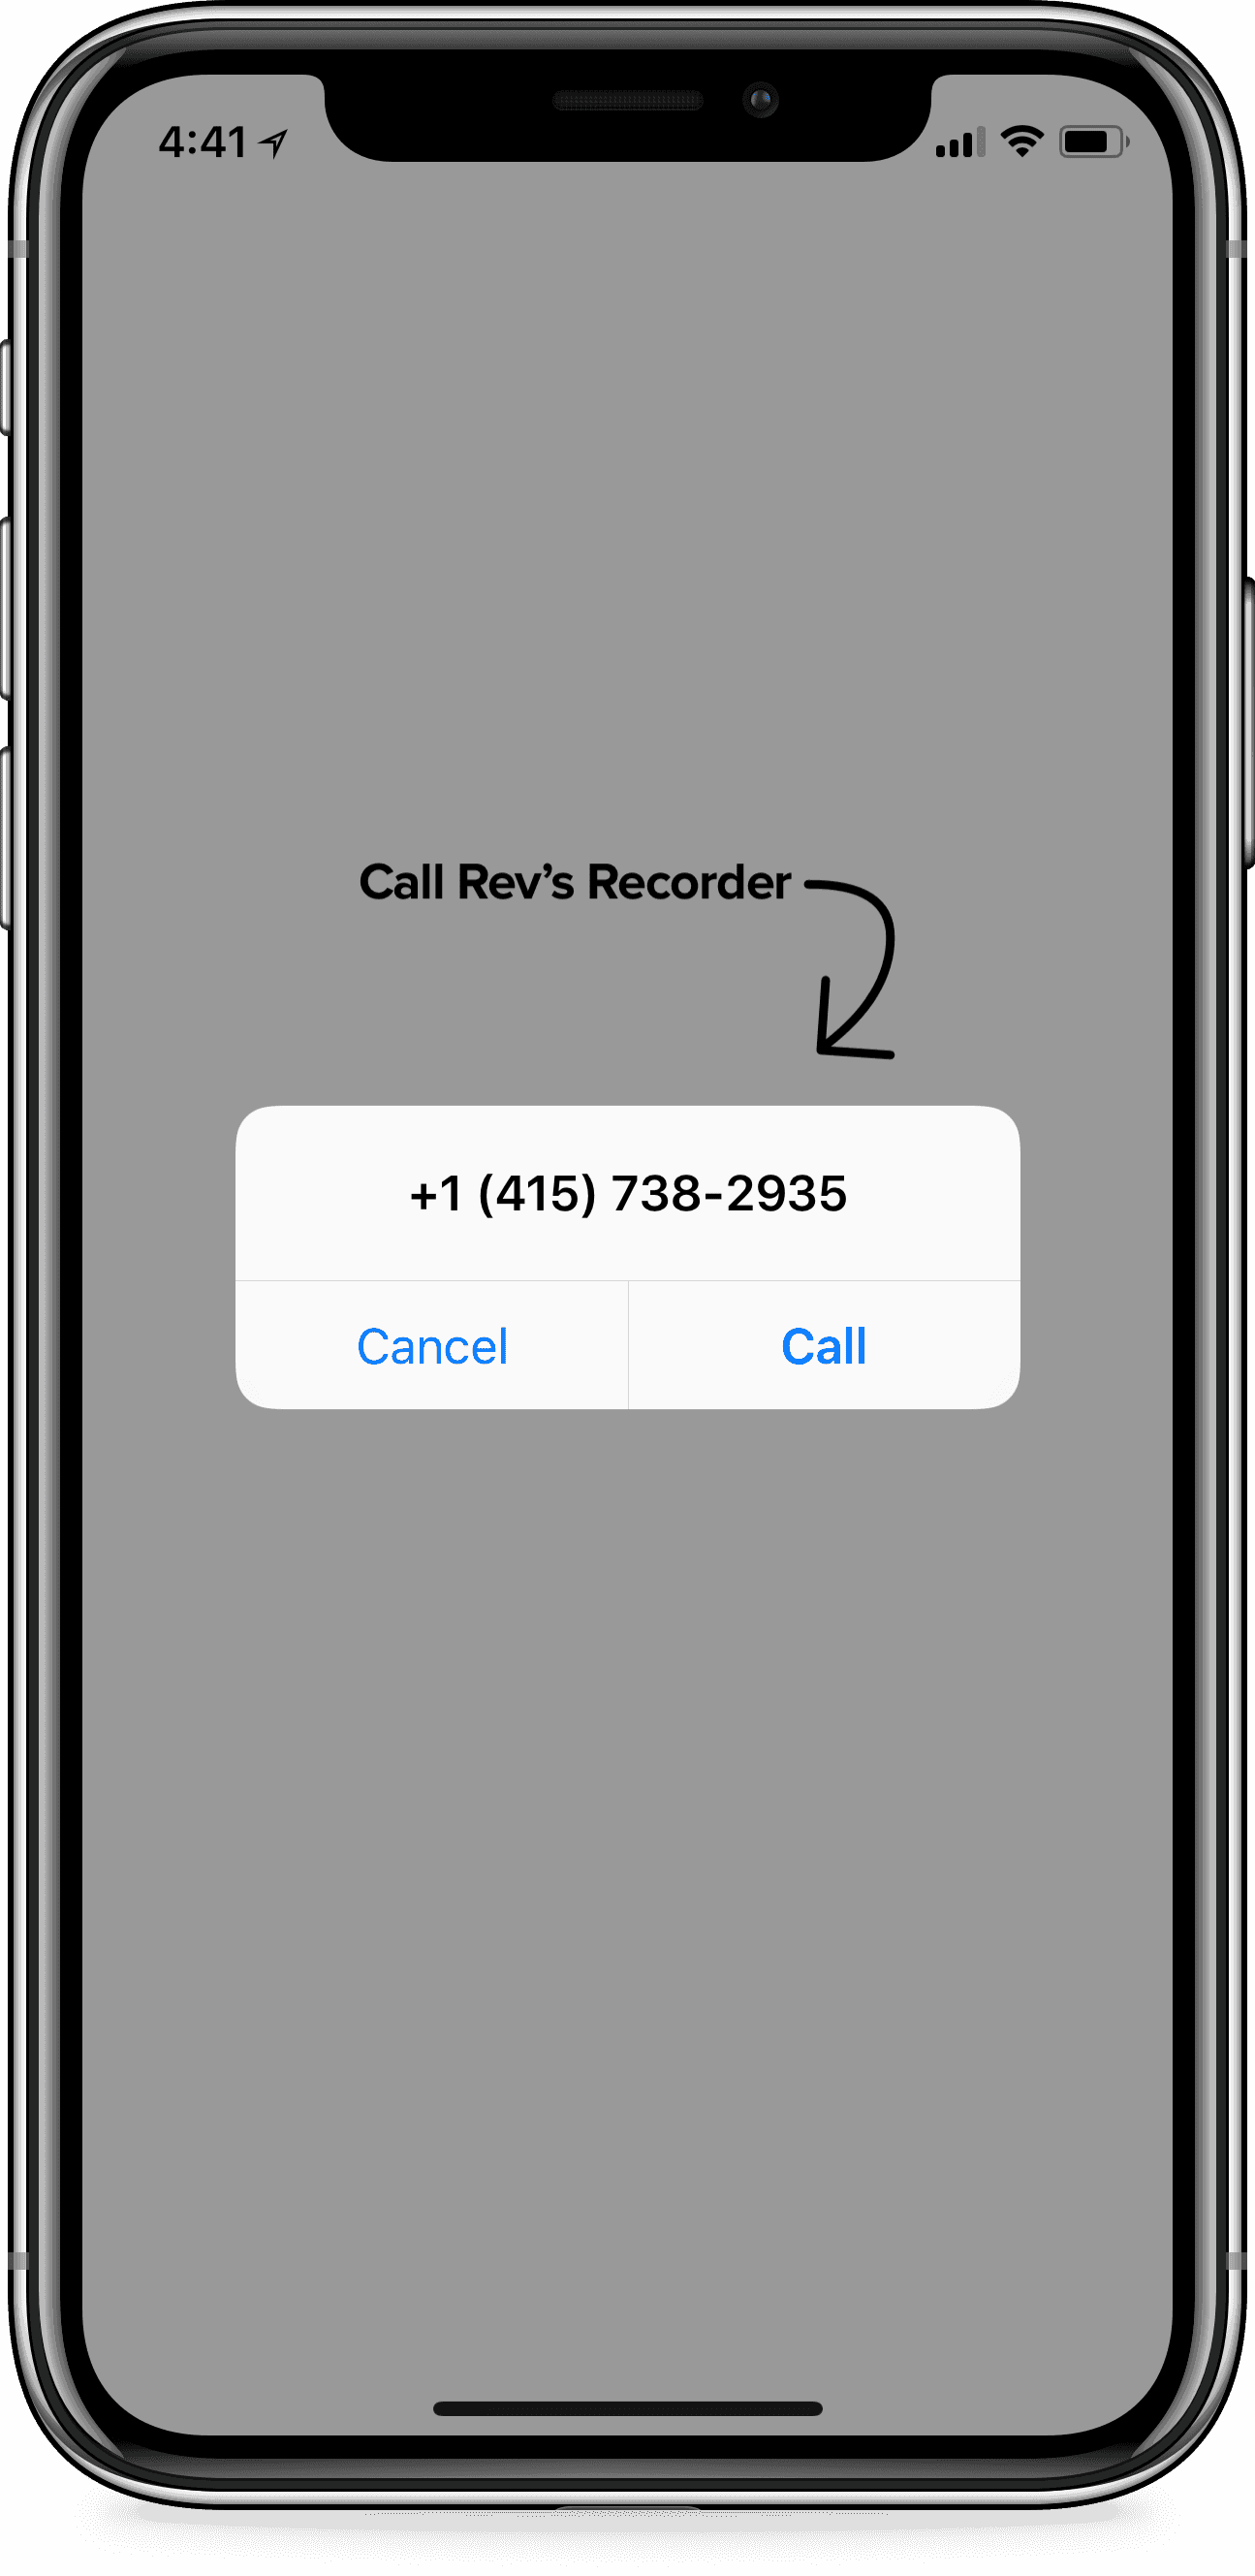 iPhone using Rev Call Recorder app with screen prompting to Call Revs Recorder